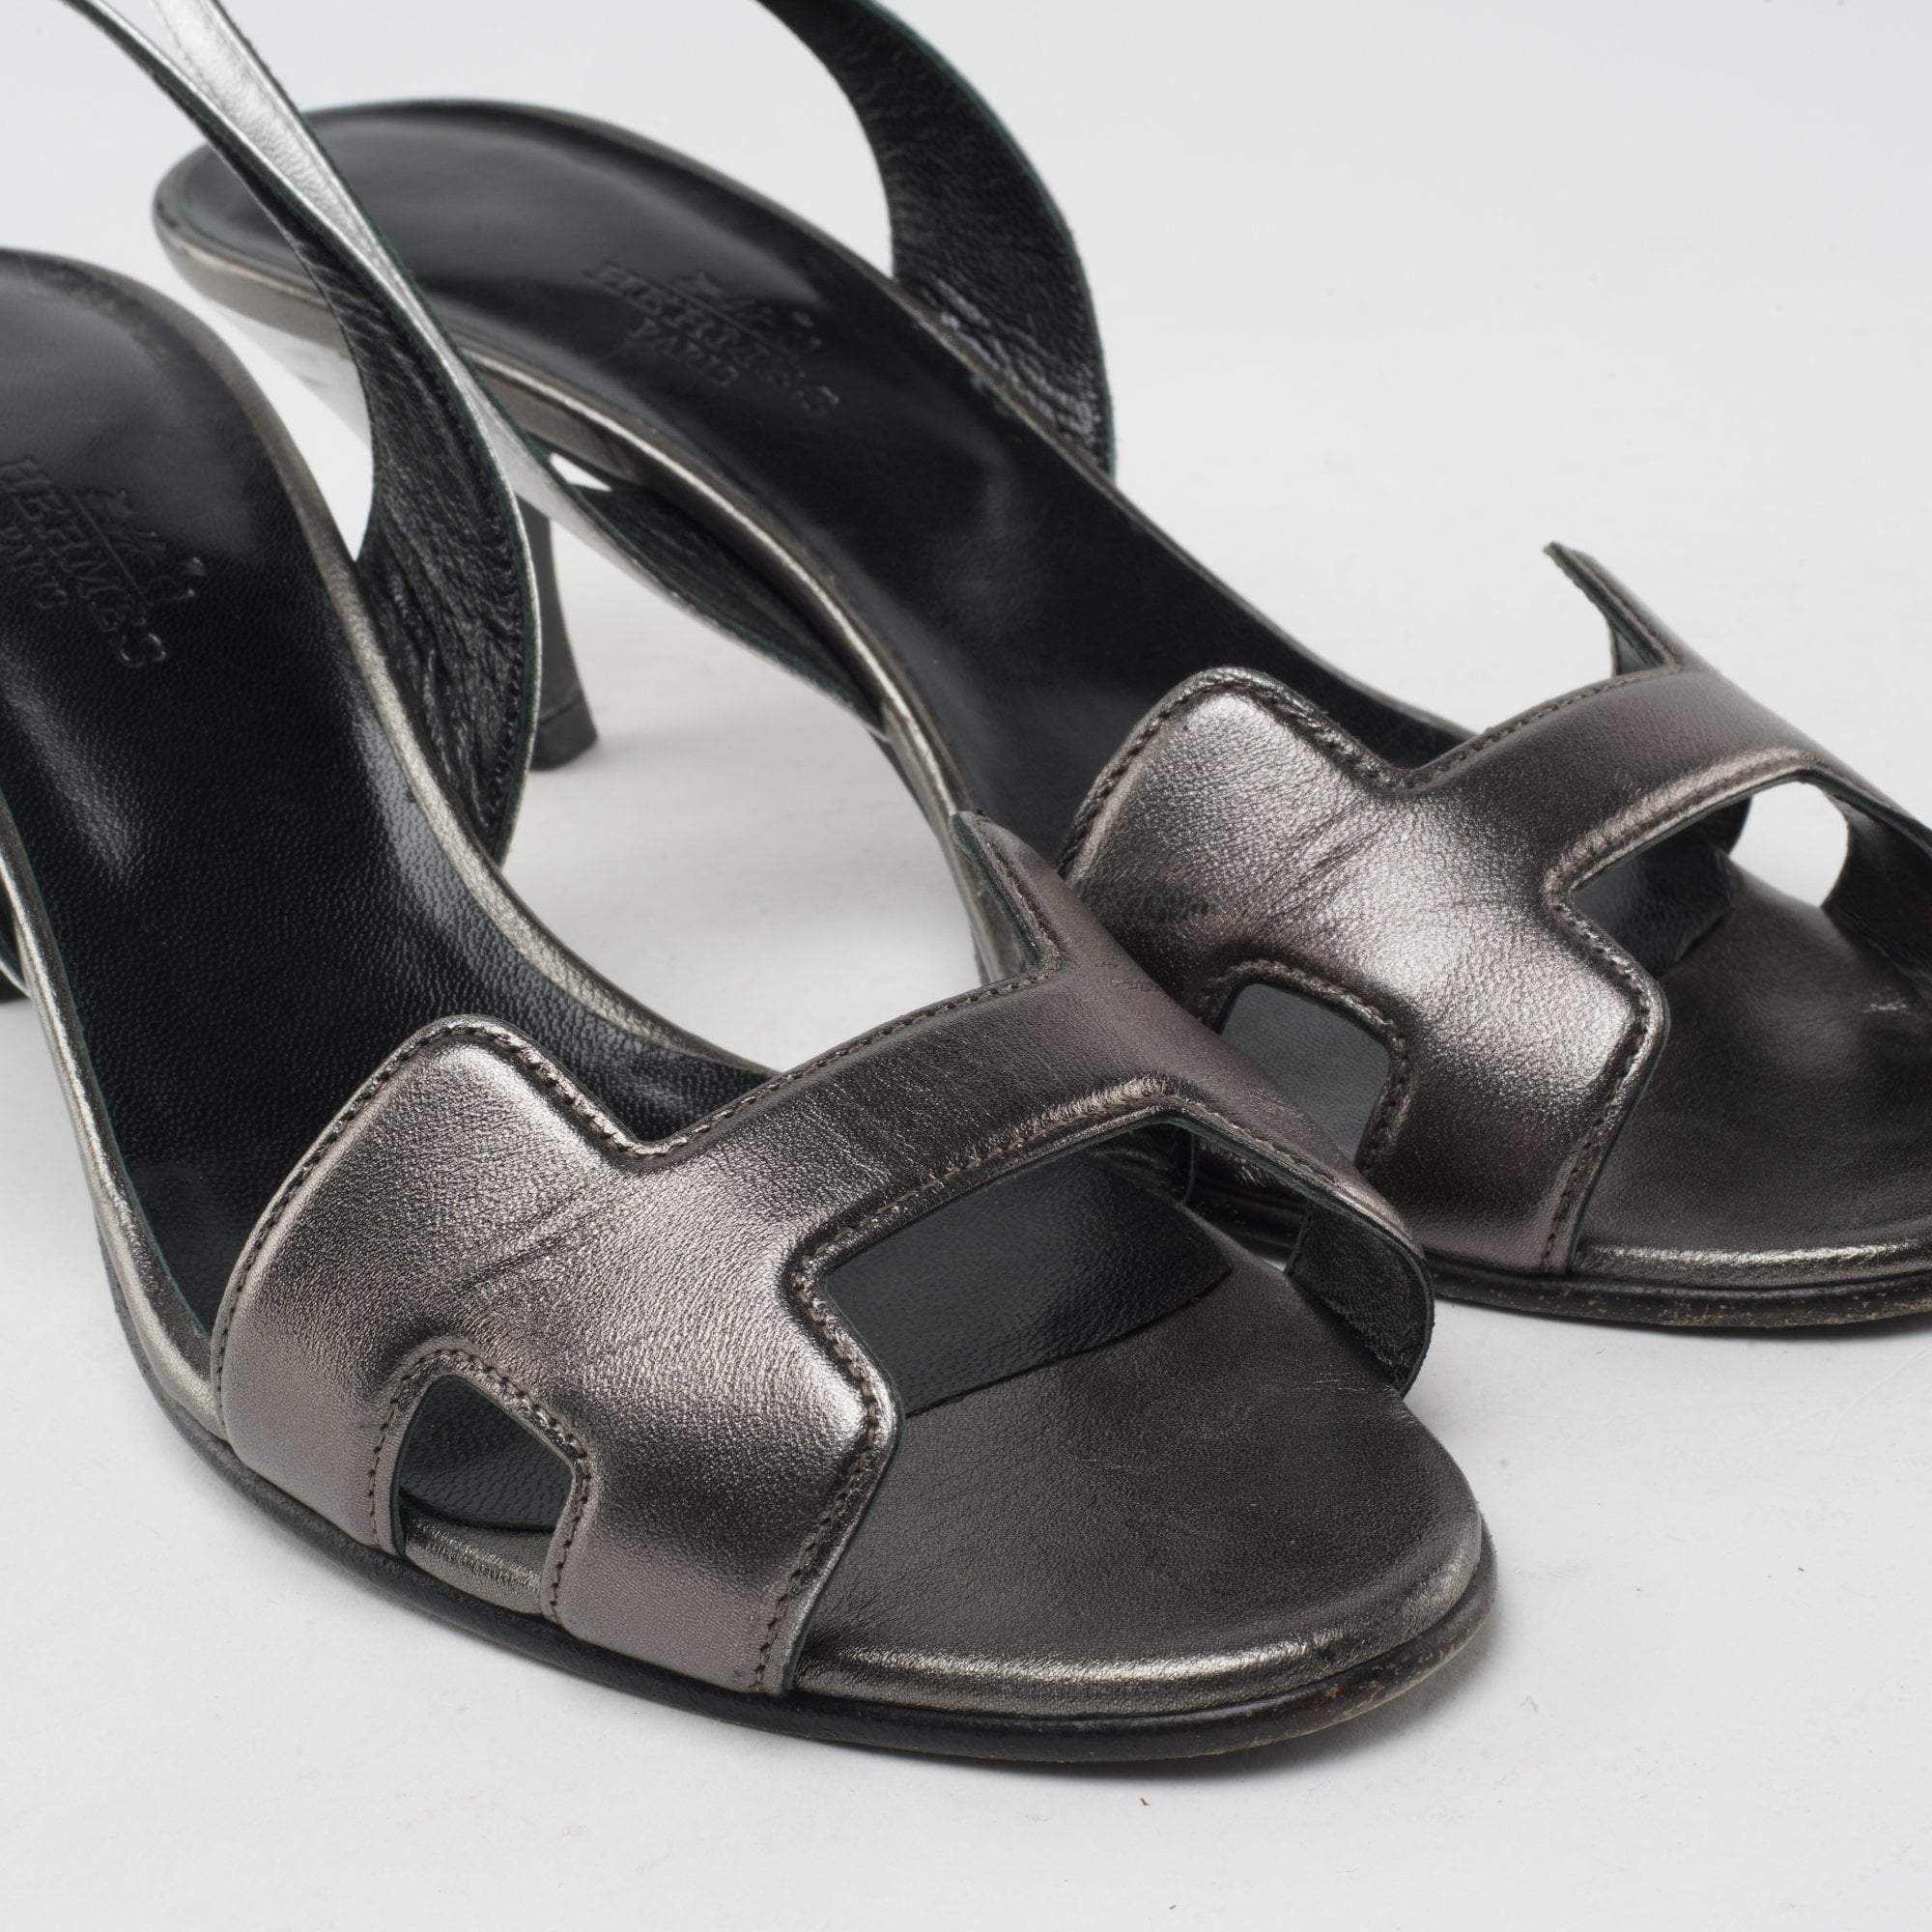 Hermes Metallic Leather Sandal Heels